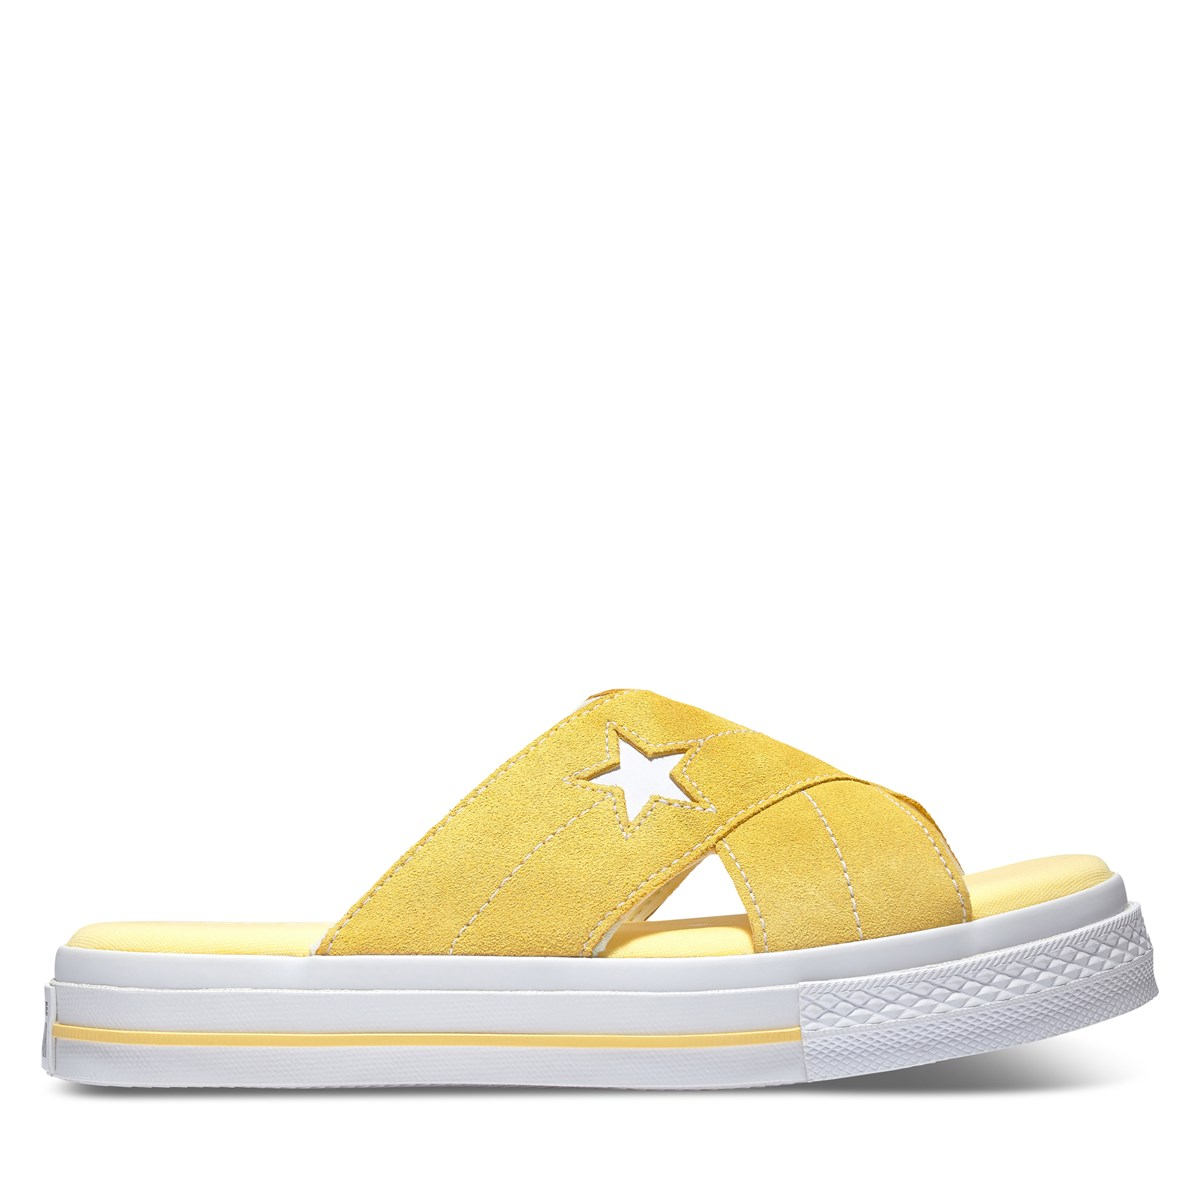 Women's One Star Sandal in Yellow